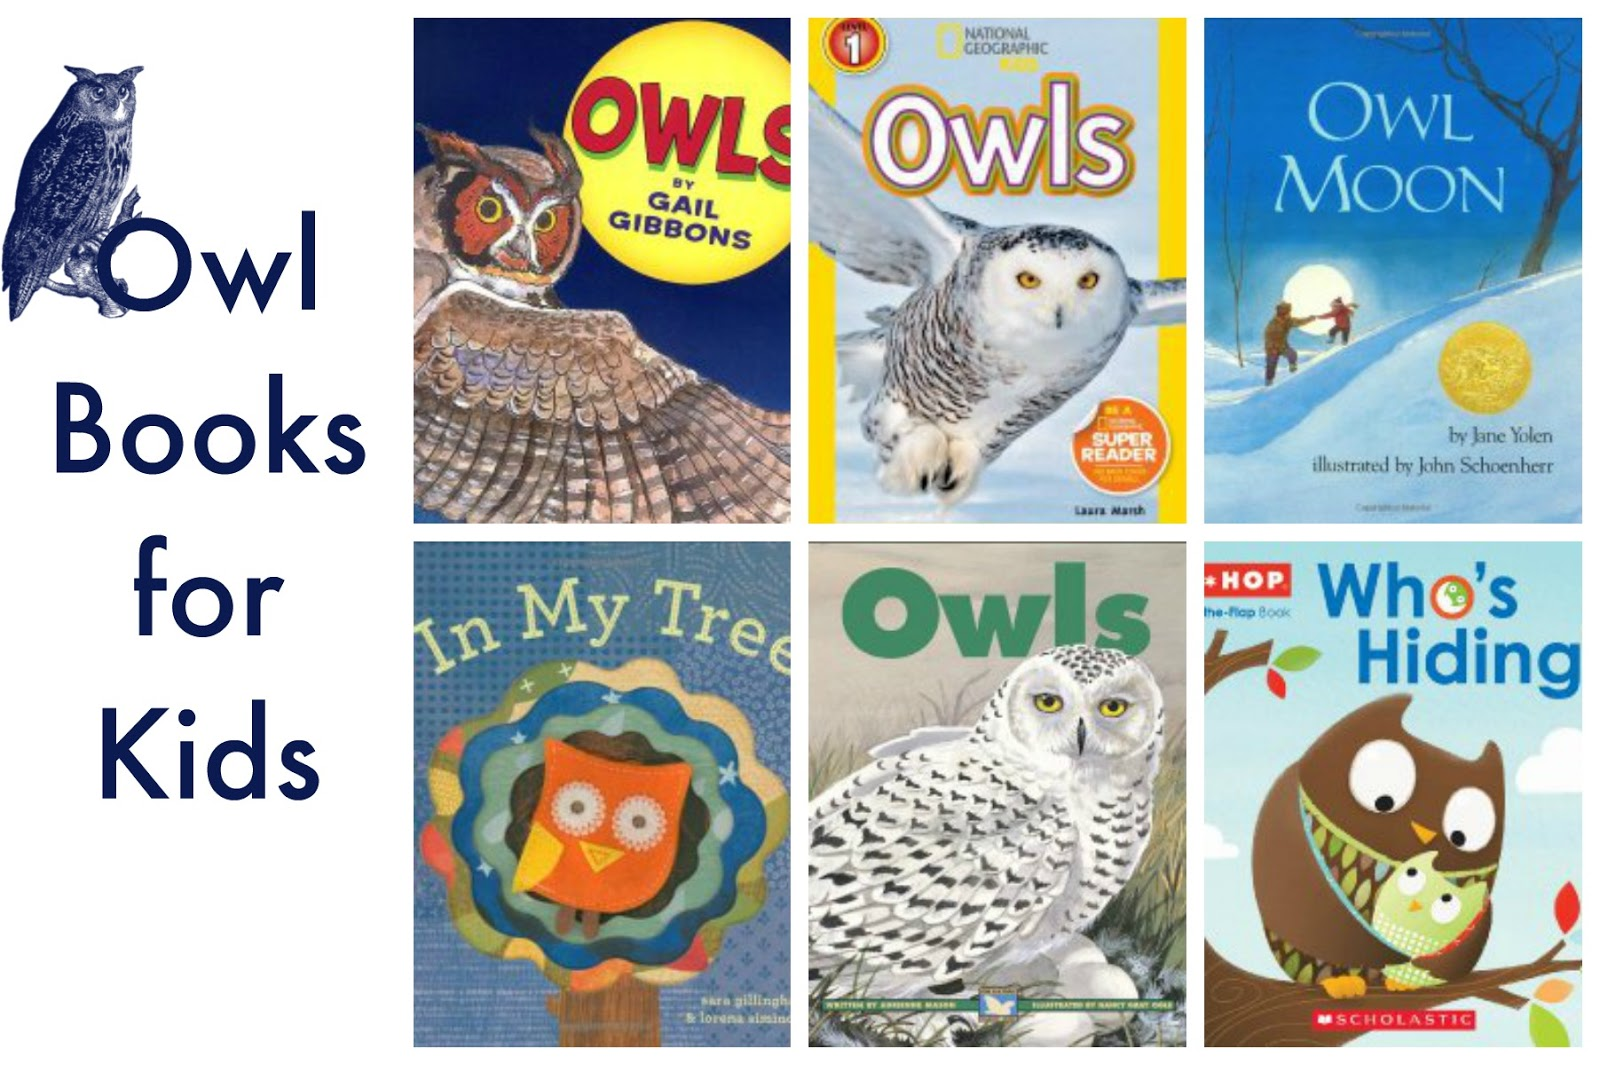 Nighttime Owl Books For Kids